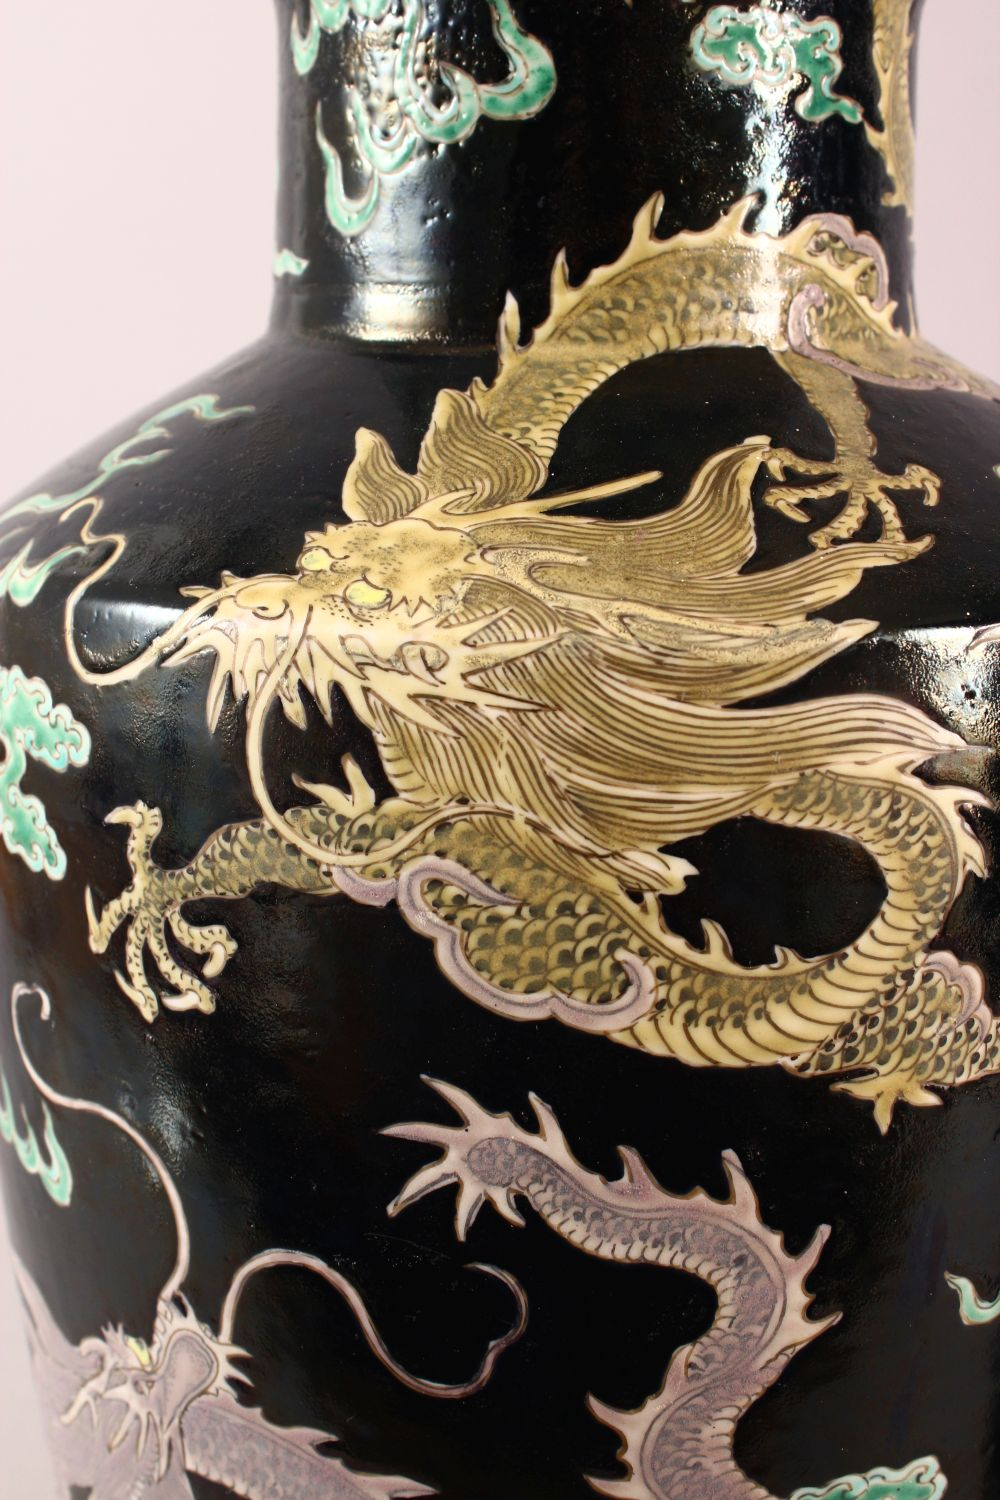 A LARGE PAIR OF CHINESE FAMILLE NOIR PORCELAIN DRAGON VASES, each vase with a black ground depicting - Image 7 of 13